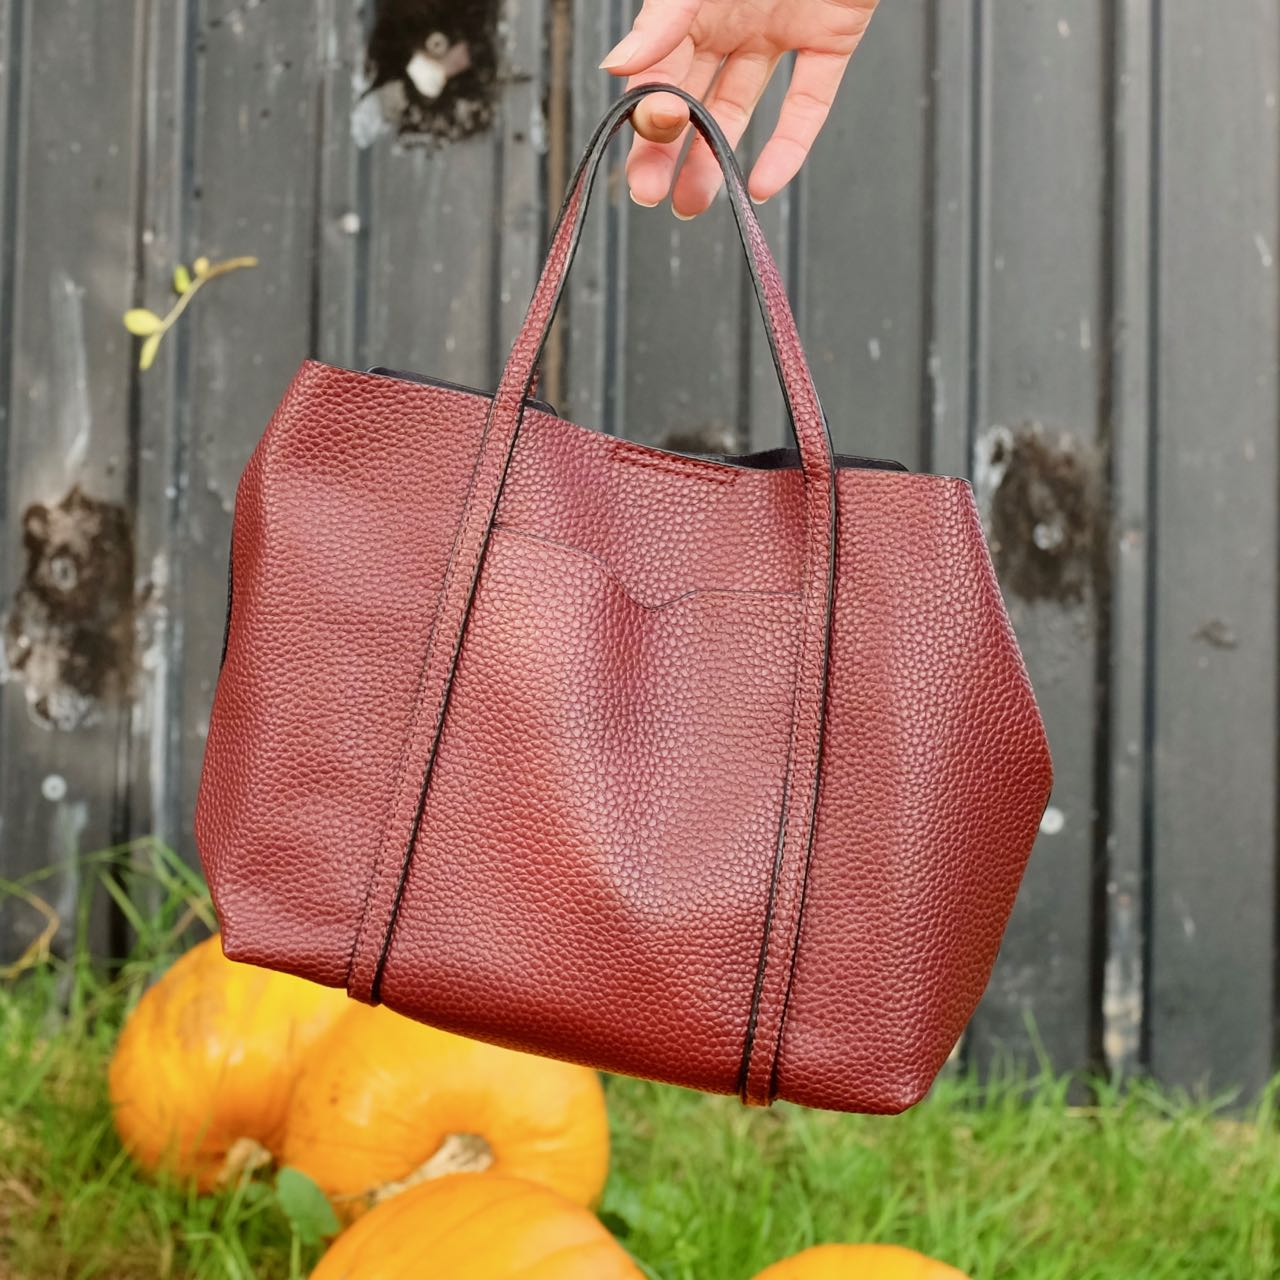 Oxblood handbag by Mango